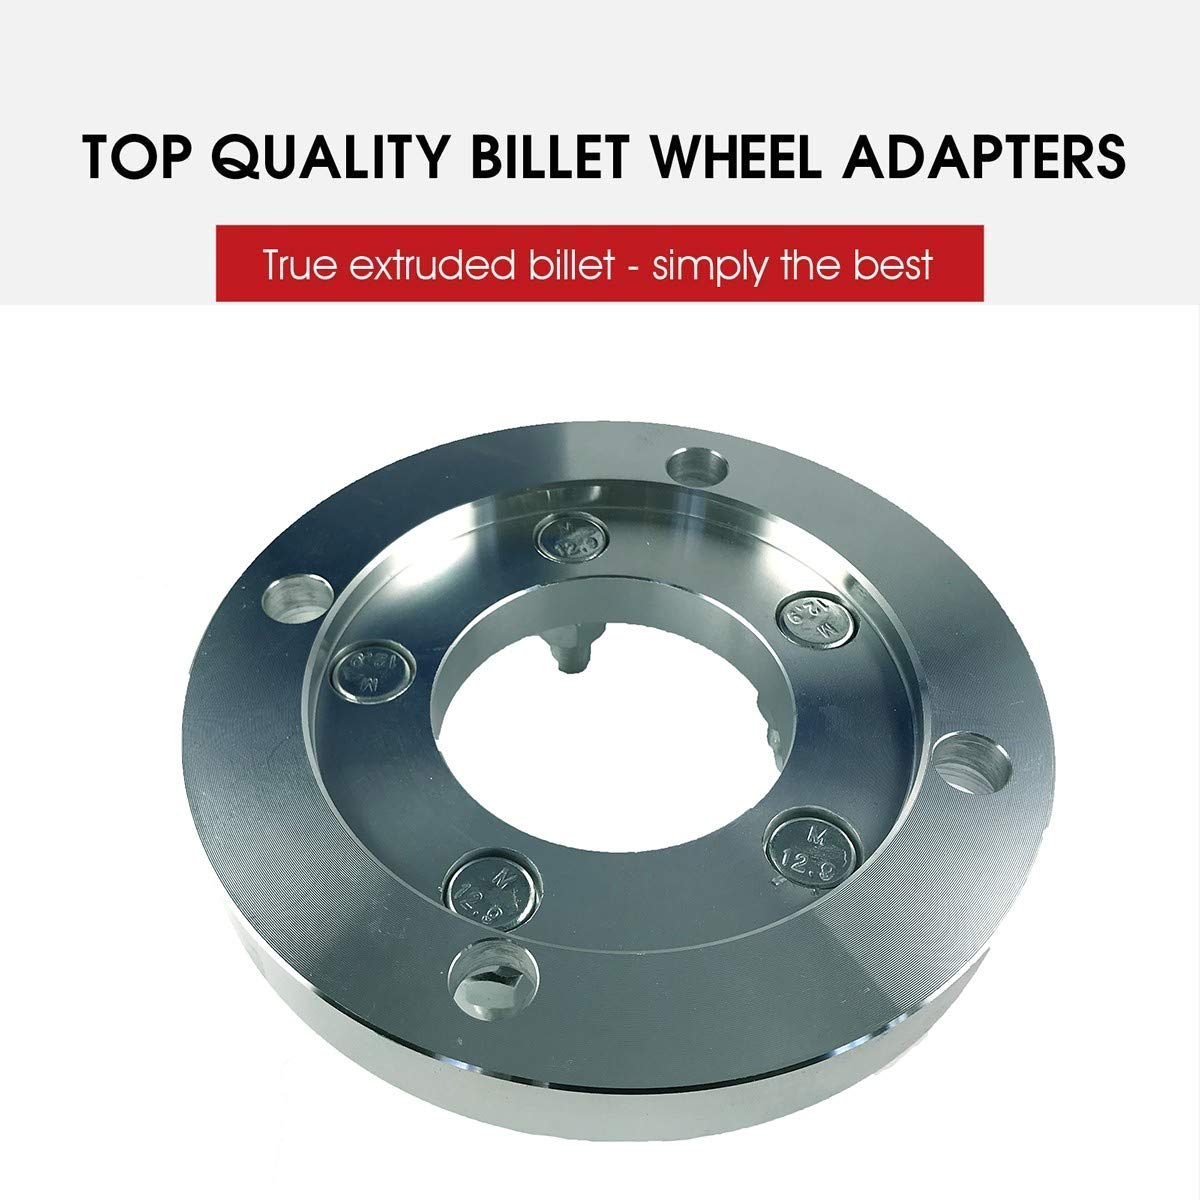 2 Wheel Adapters 4x156 to 5x4.5 Thickness 1 Inch 4x156 to 5x114.3